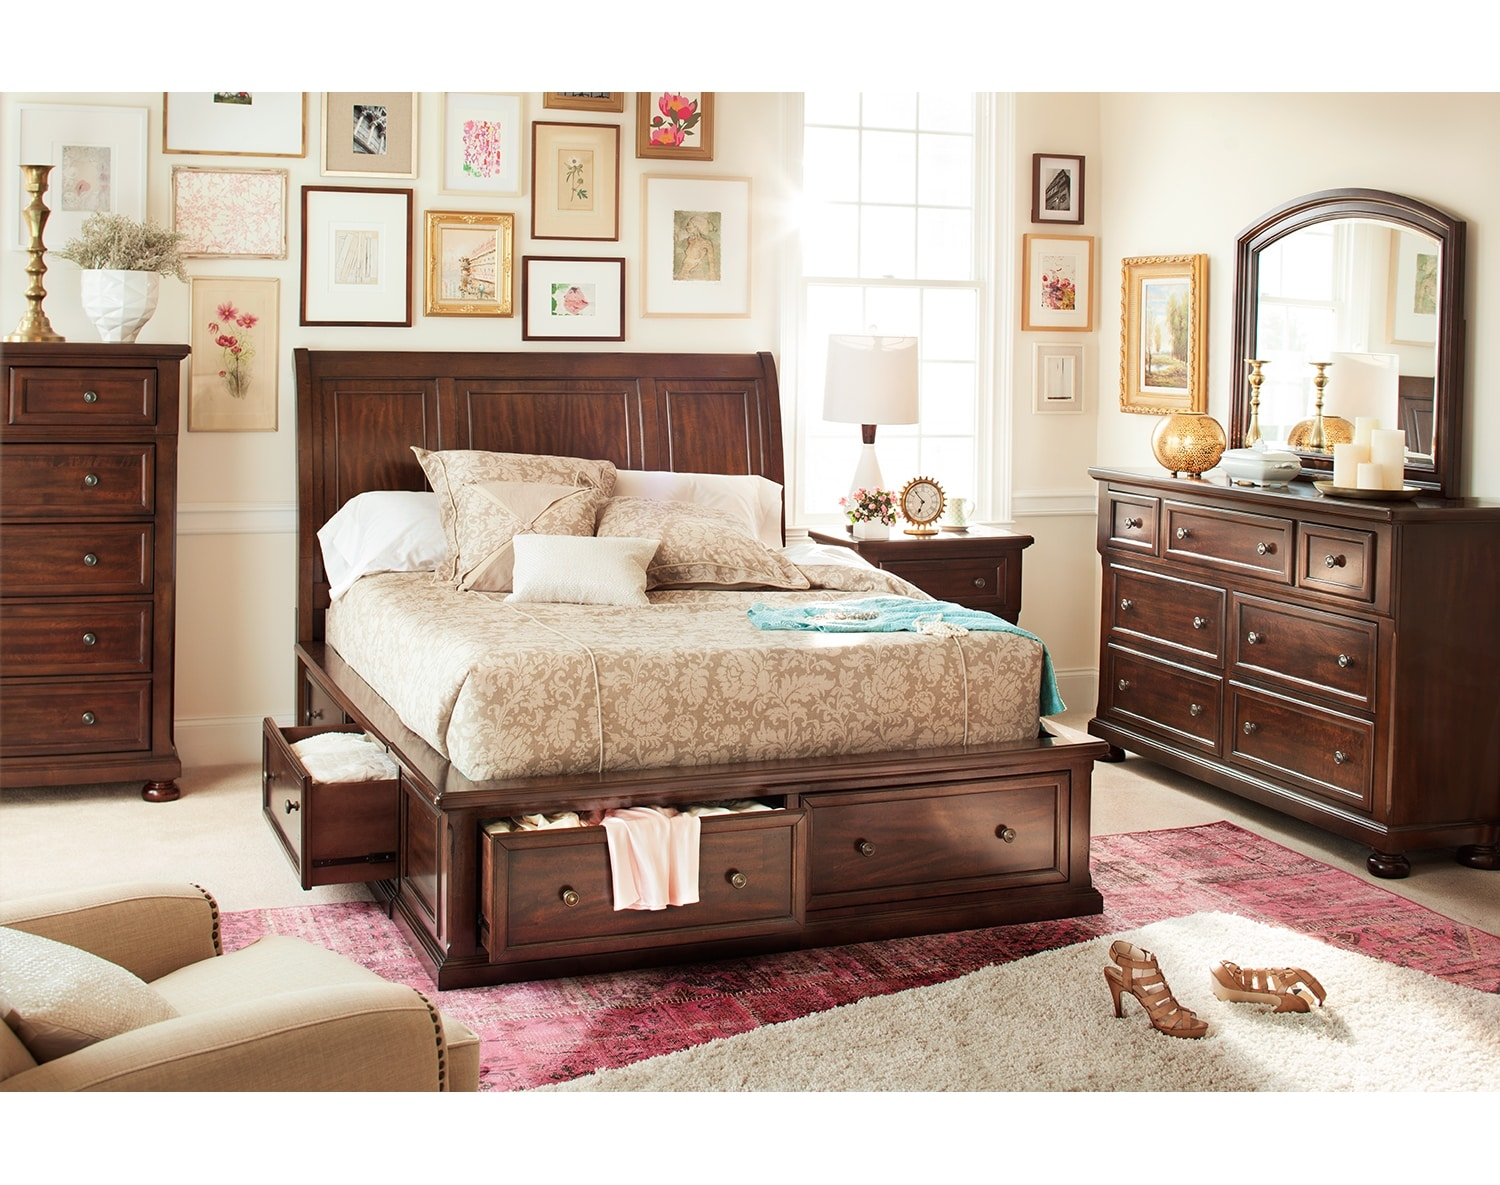 The Hanover Storage Bedroom Collection Cherry Value